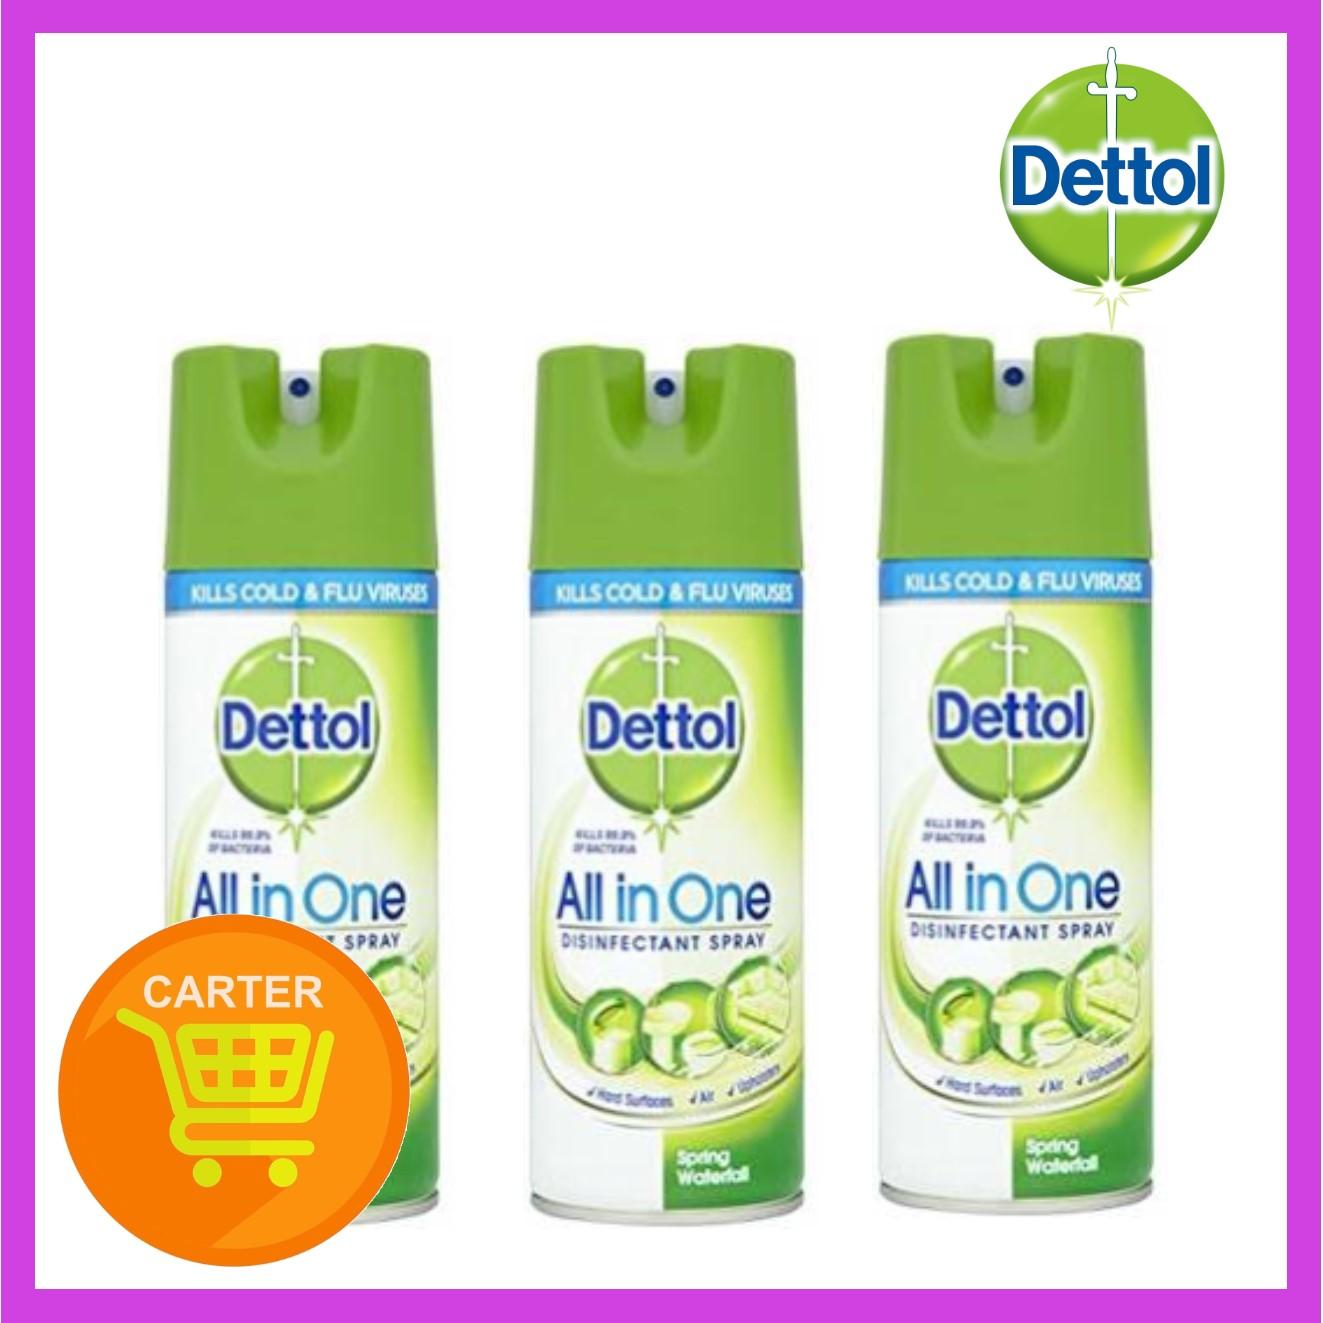 DETTOL DISINFECT SPRAY SPRING WATERWALL 400ml x (3 Pack)